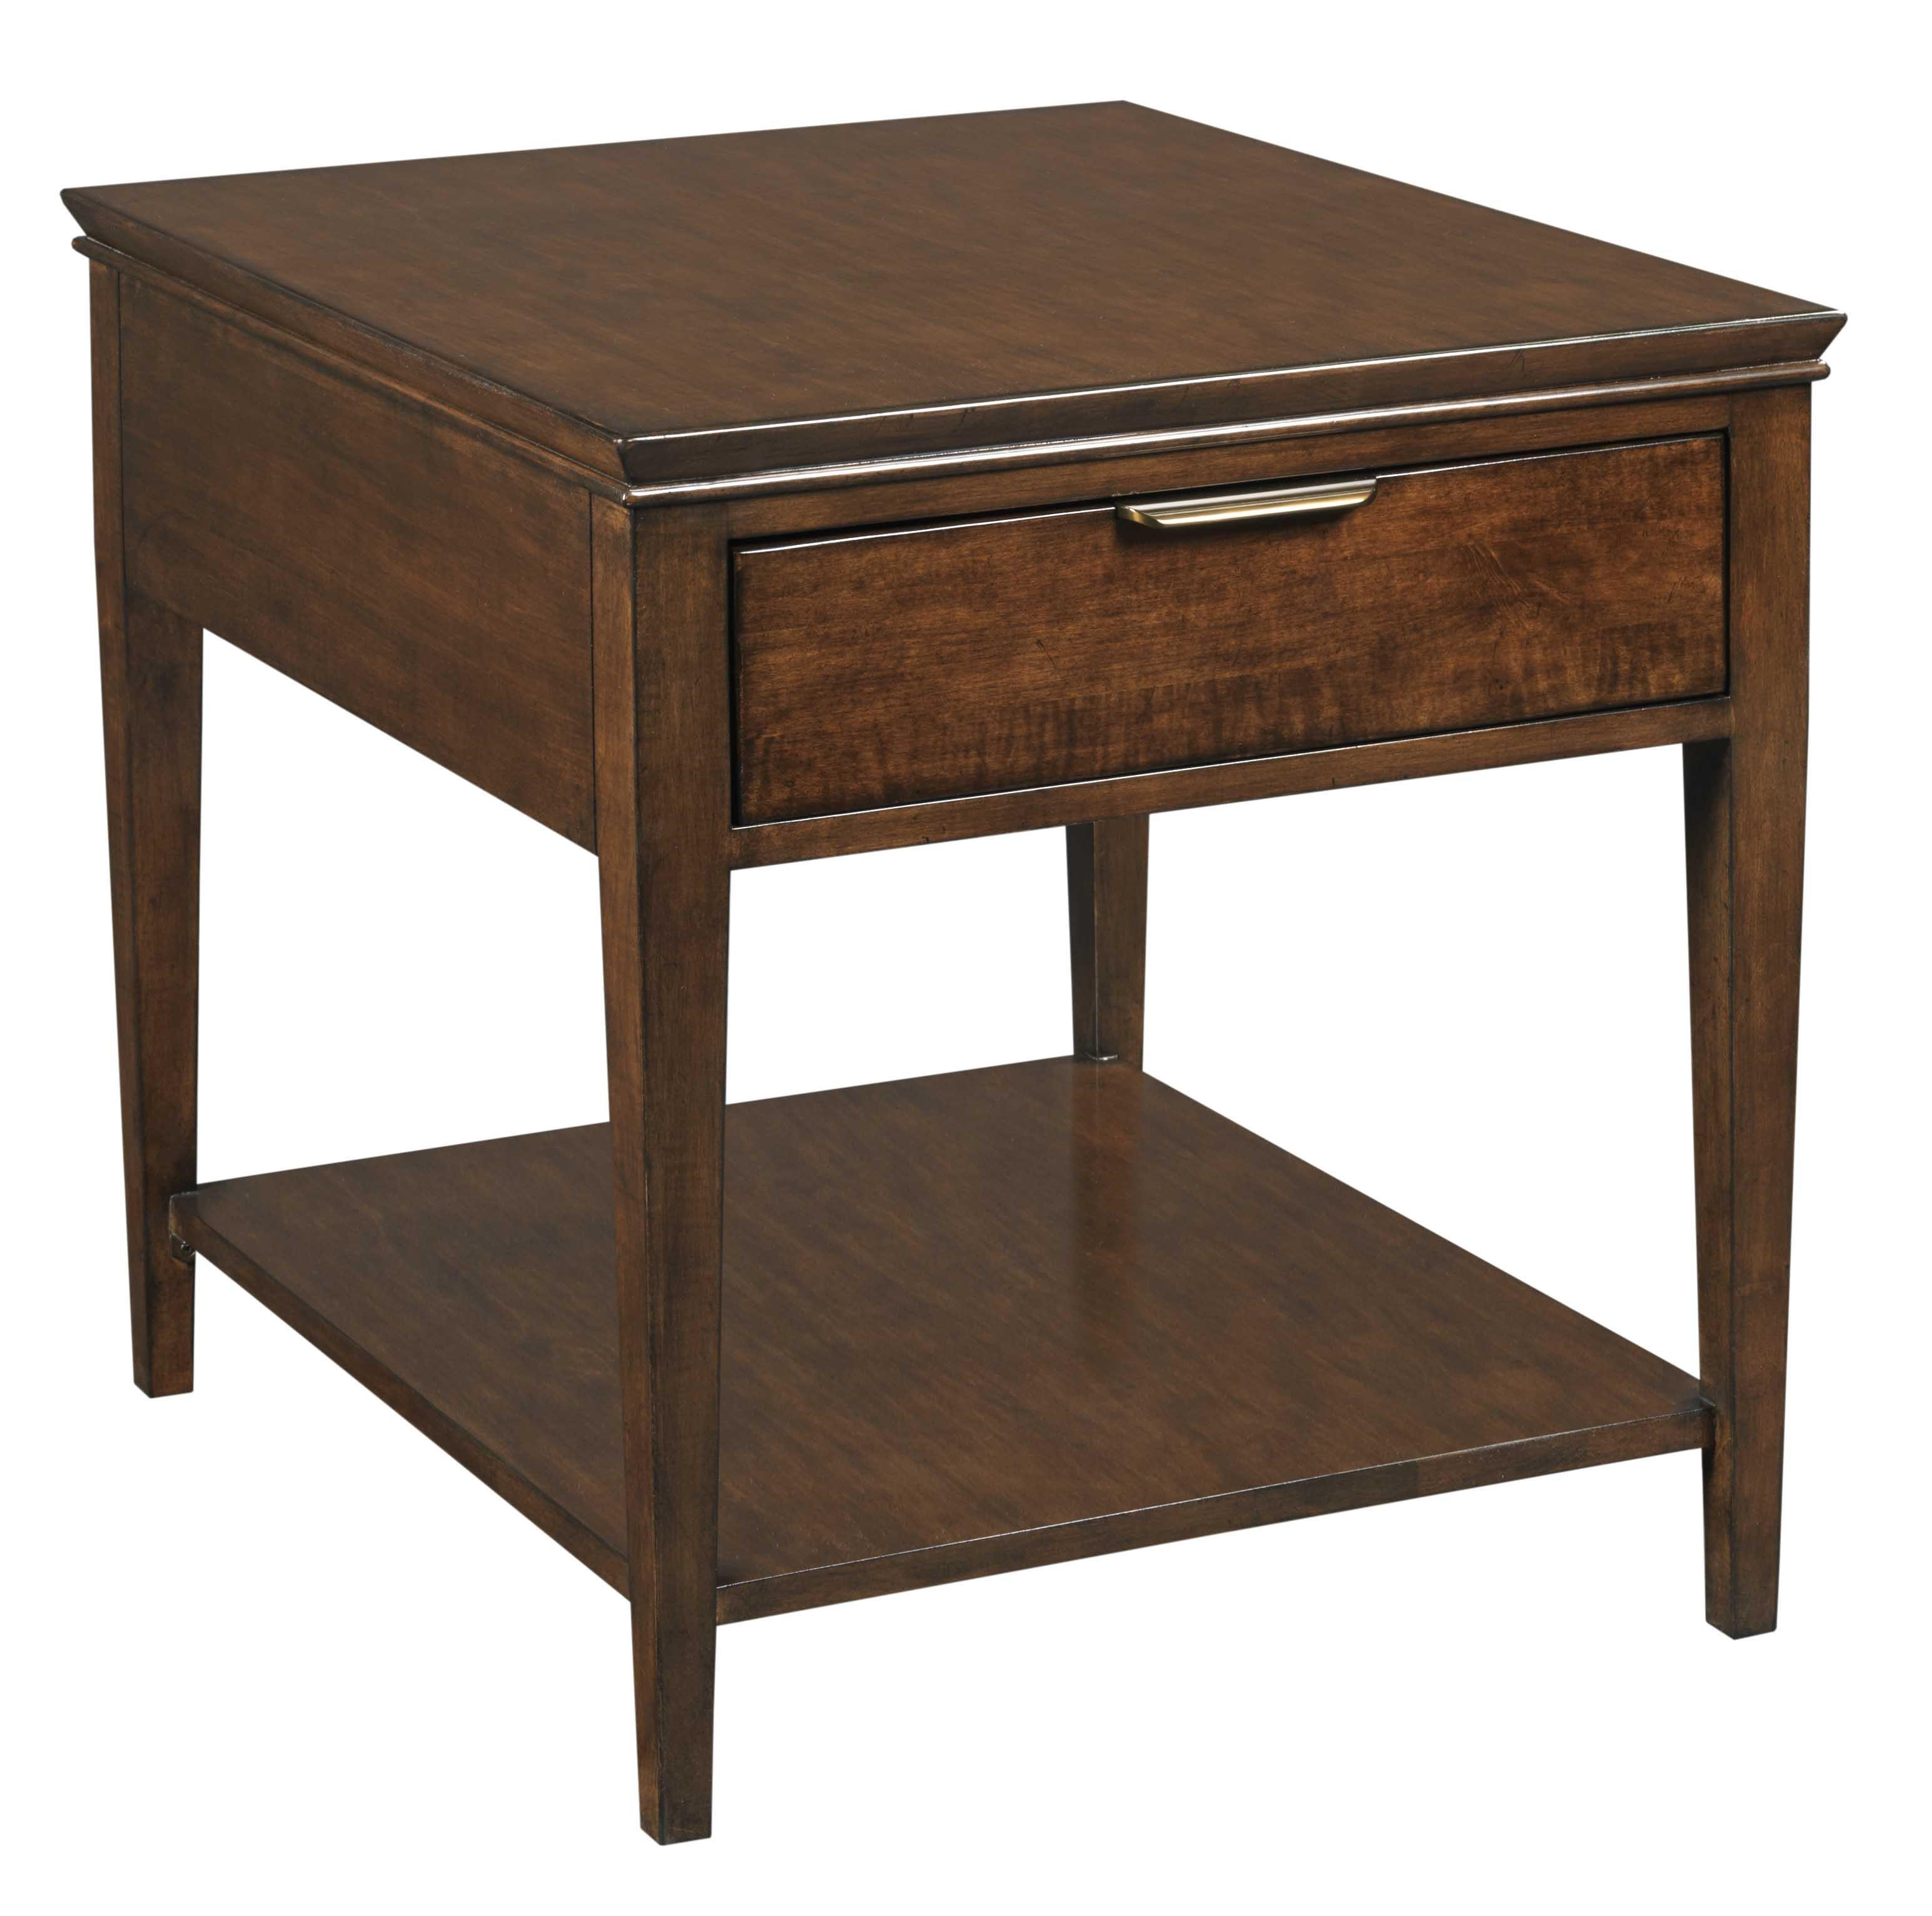 Transitional Elise End Table with One Drawer